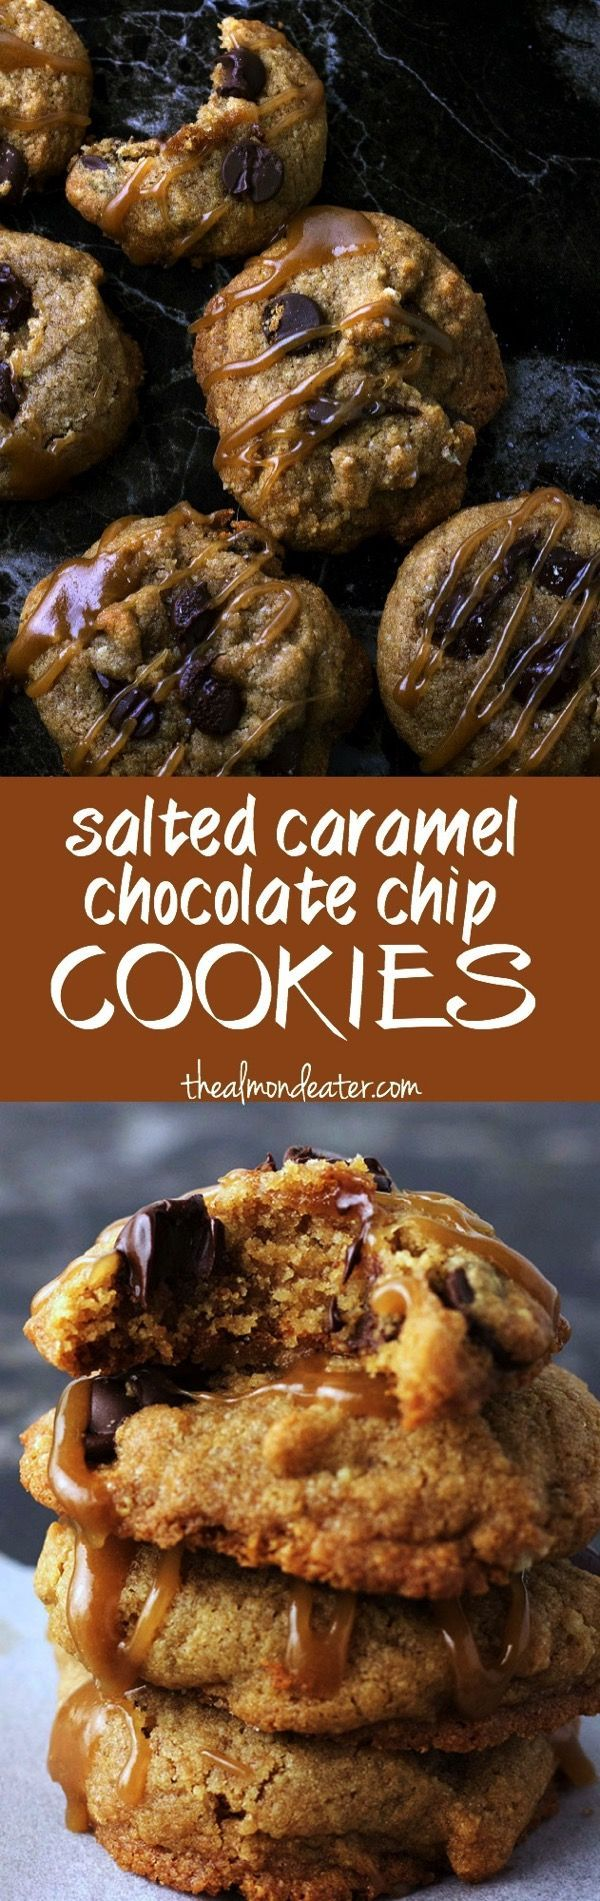 Soft, chewy gluten free chocolate chip cookies with a salted caramel drizzle #glutenfree